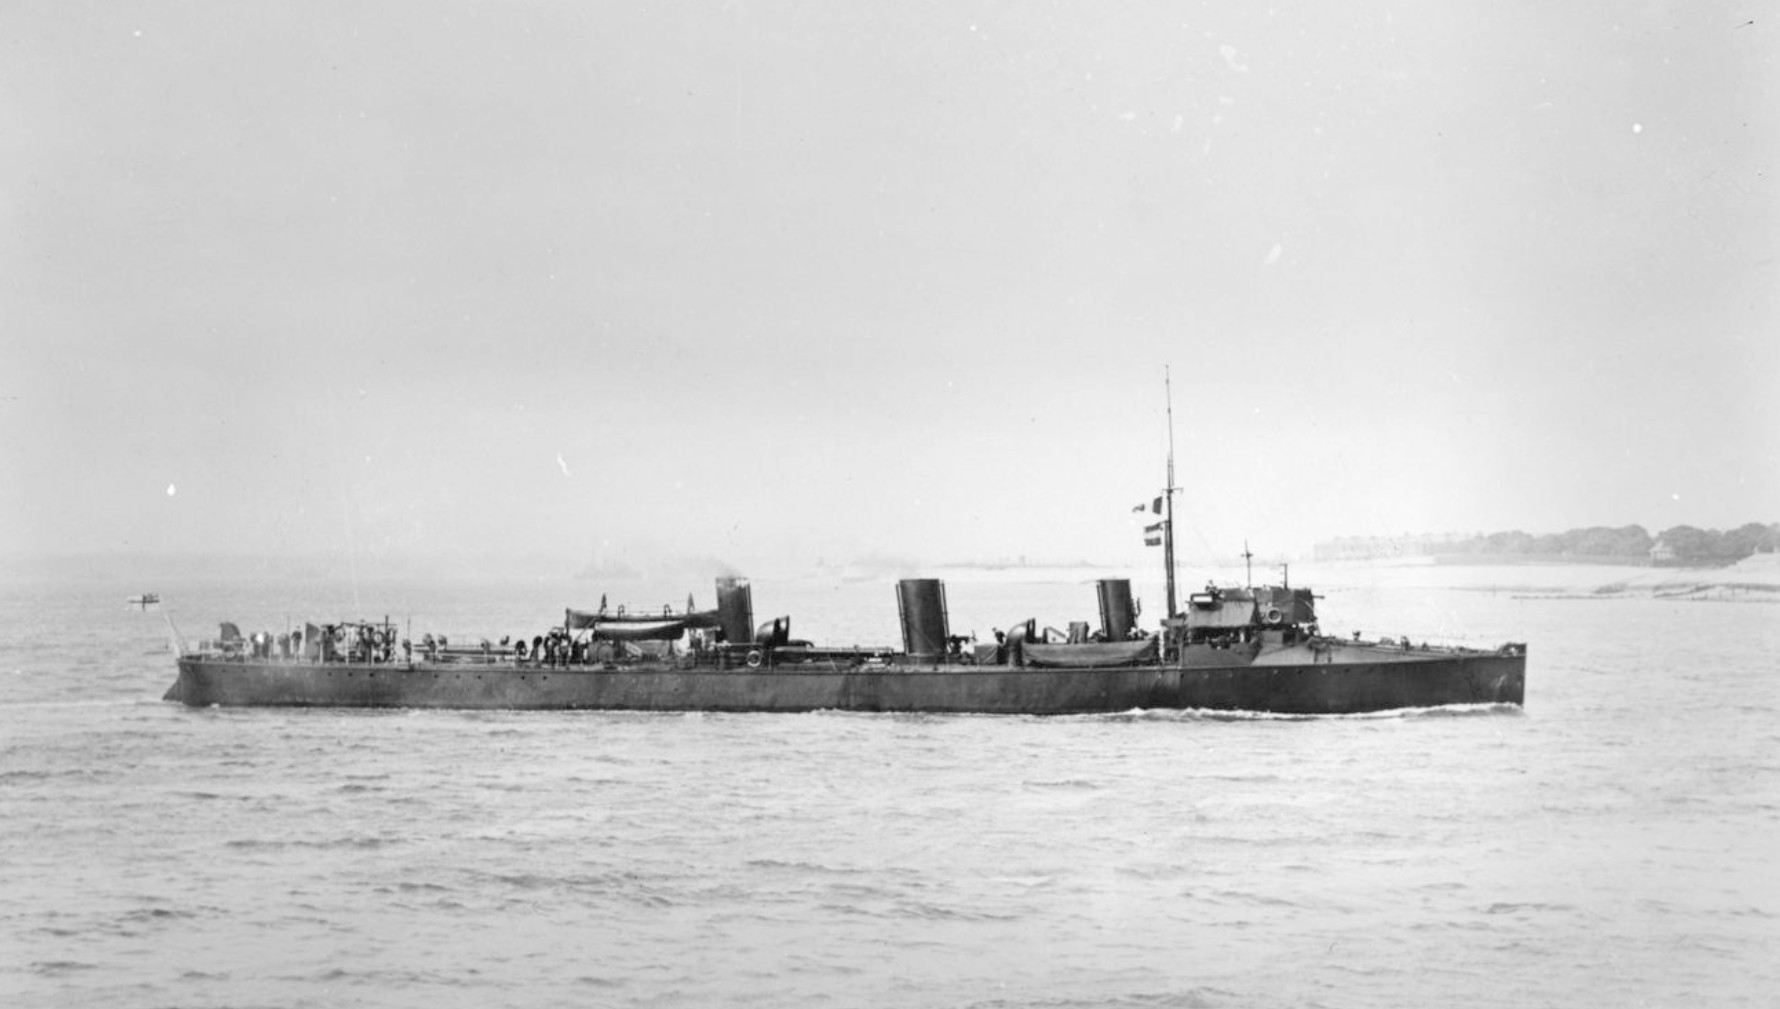 HMS Mermaid